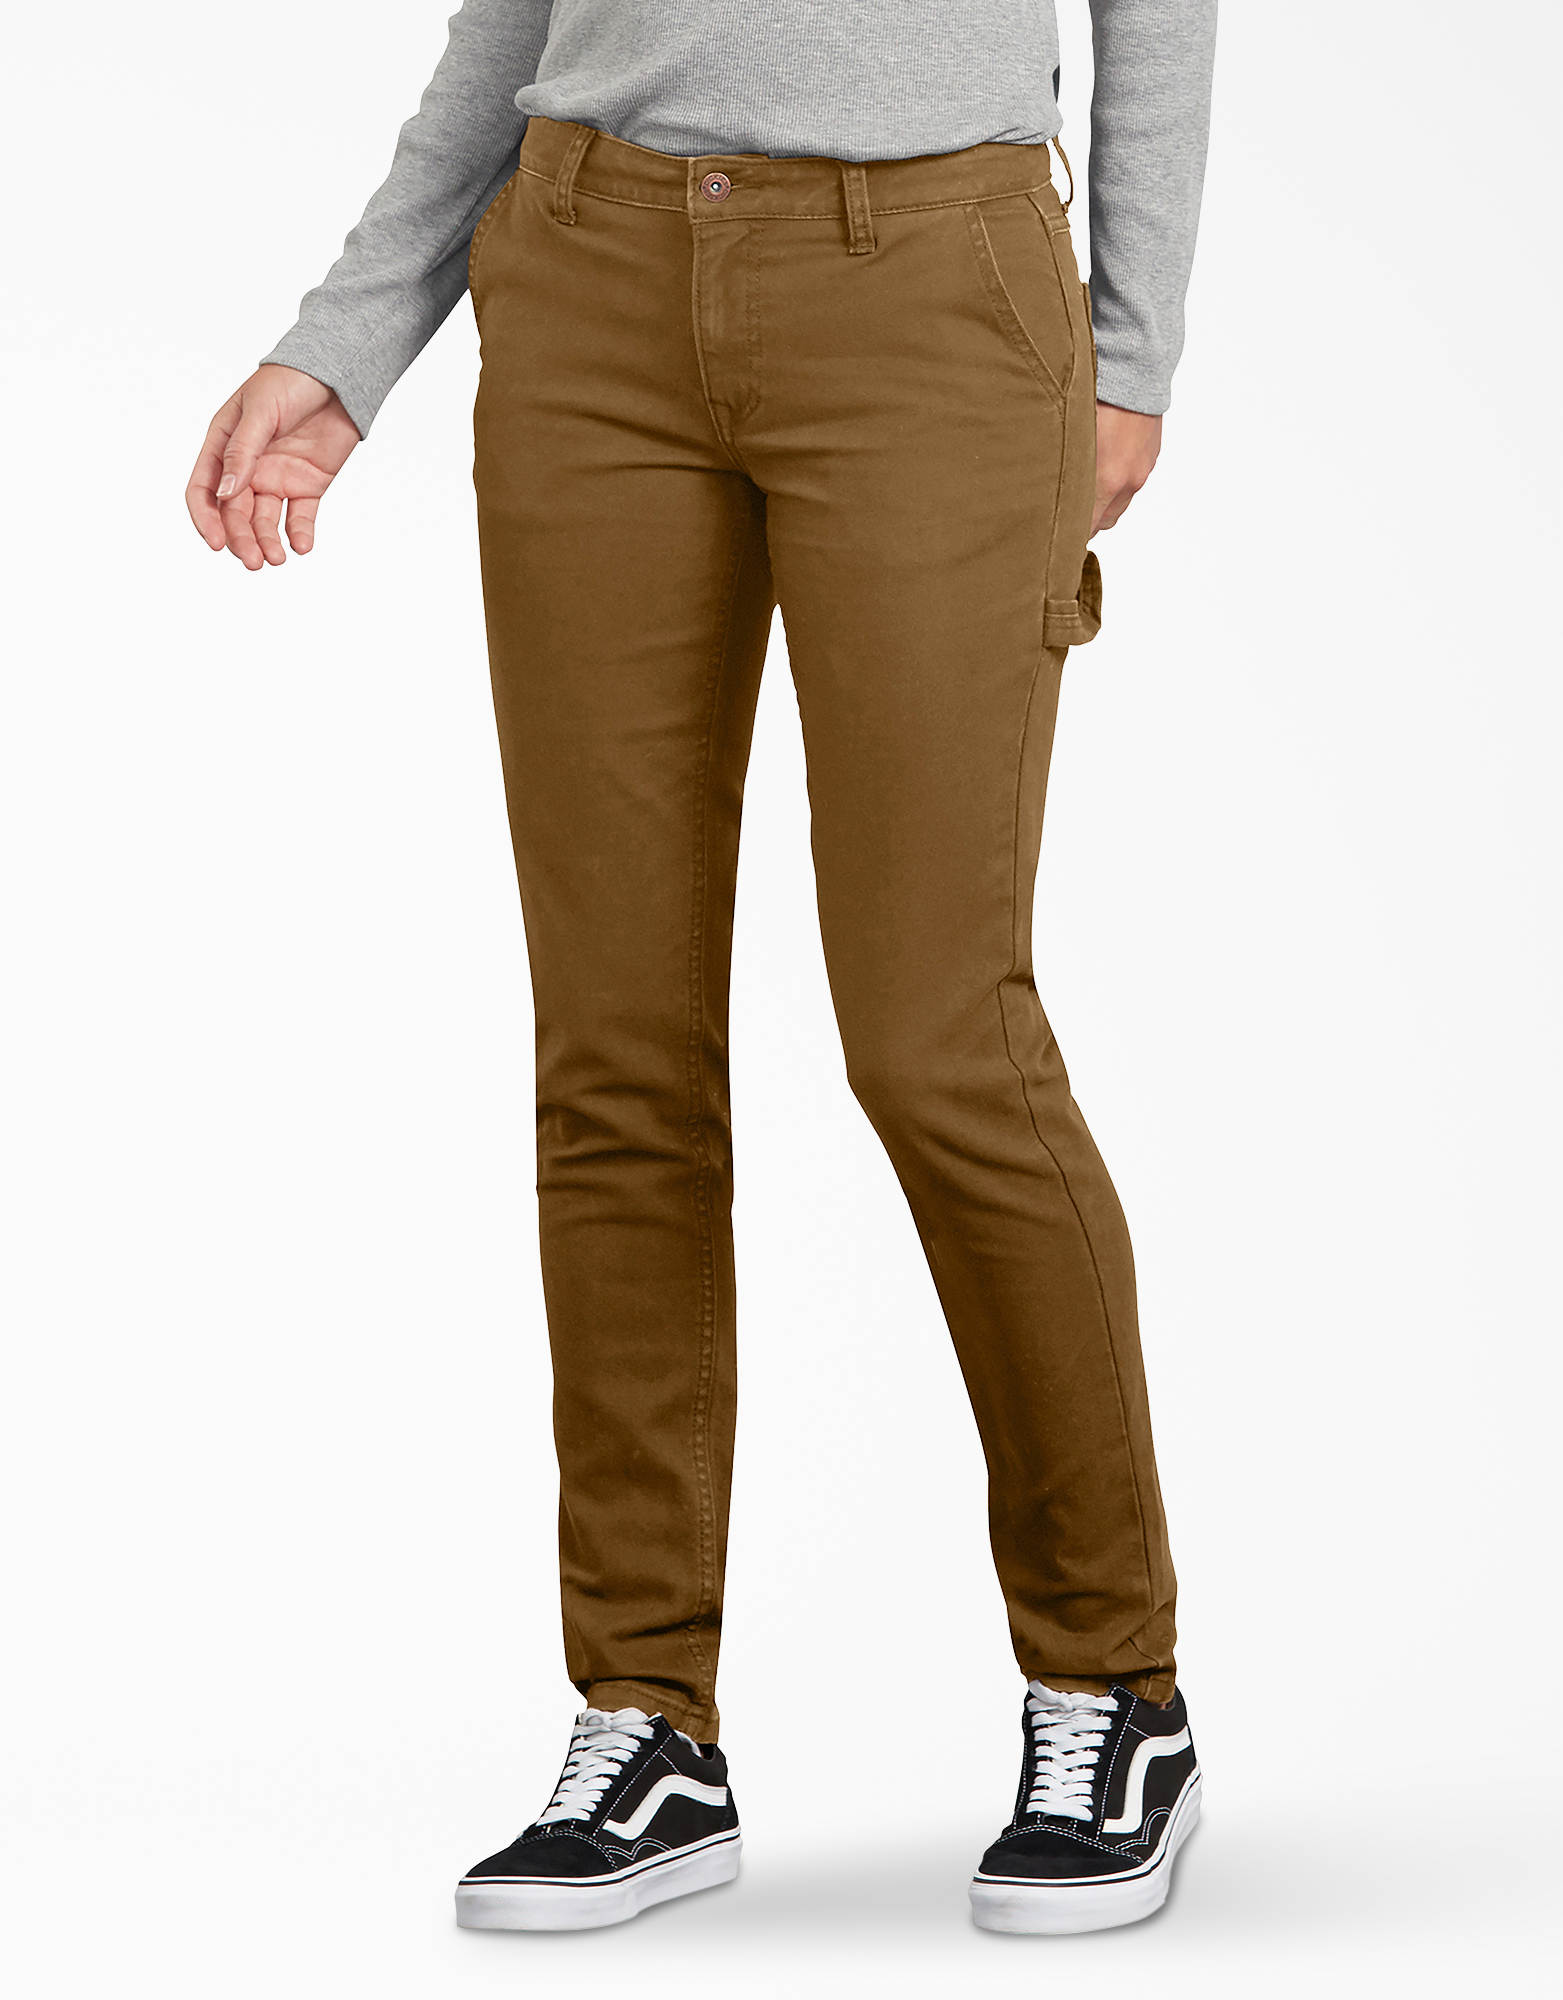 Women's Stretch Washed Duck Carpenter Pants - Brown Duck (RBD)